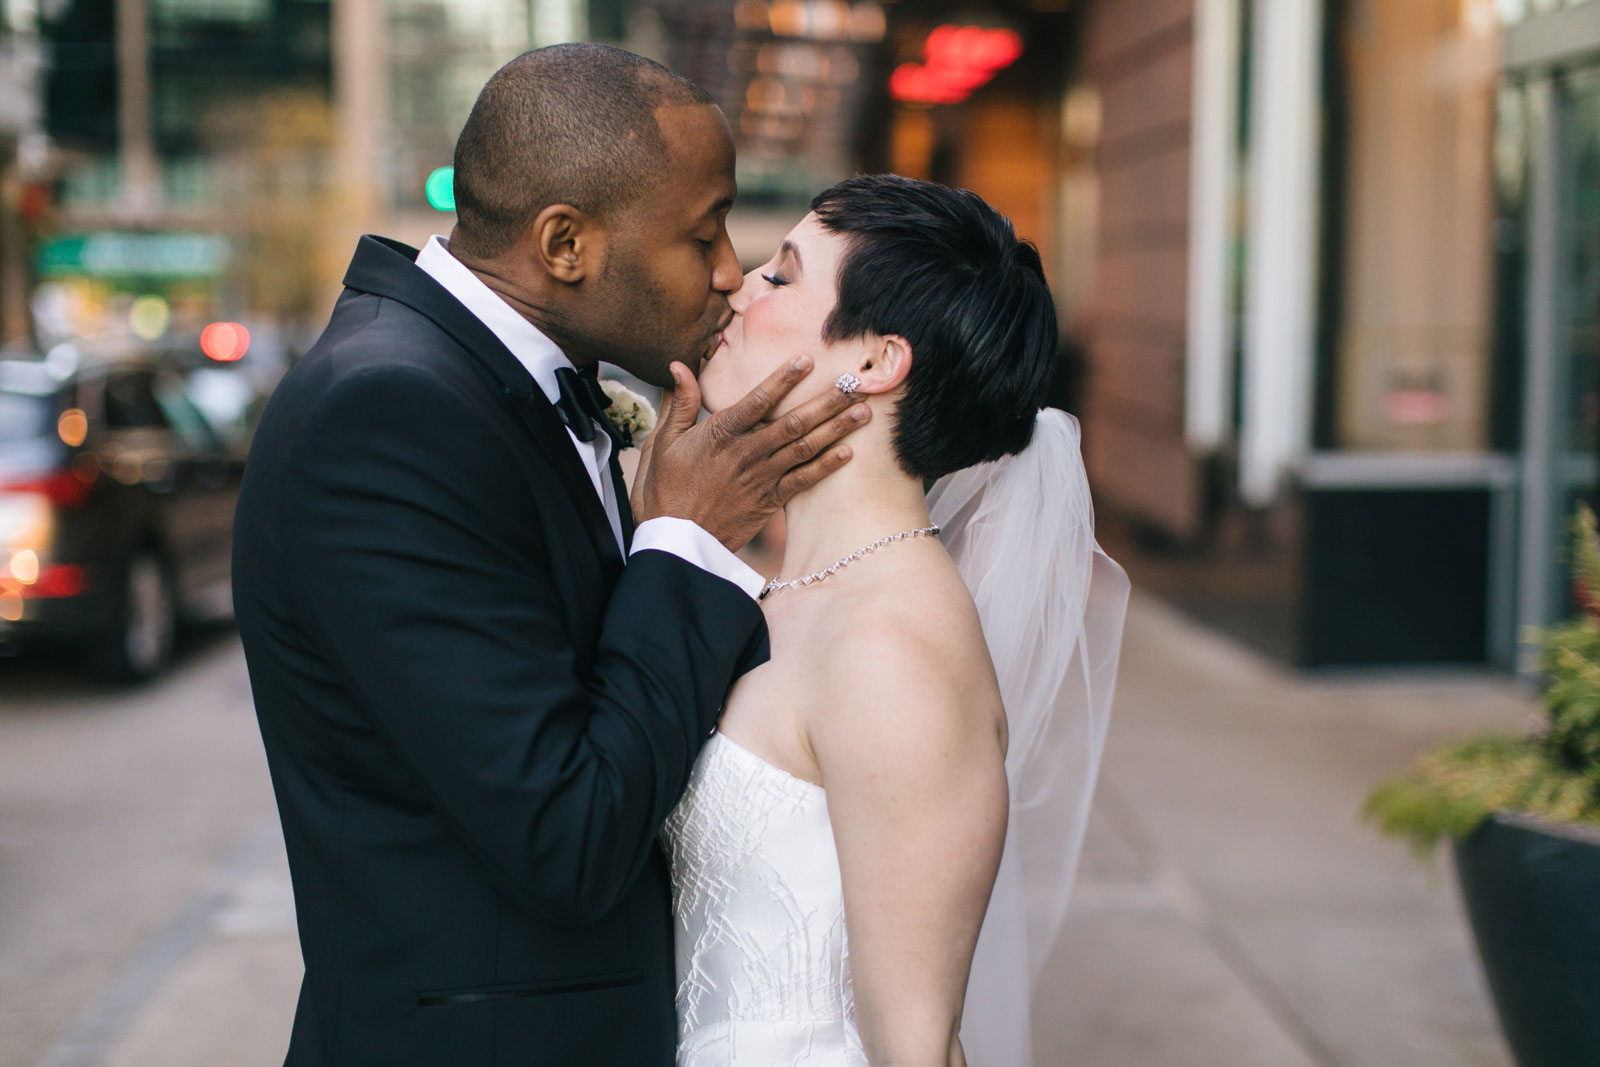 intimate portrait of bride and groom kissing on the streets of Boston in winter